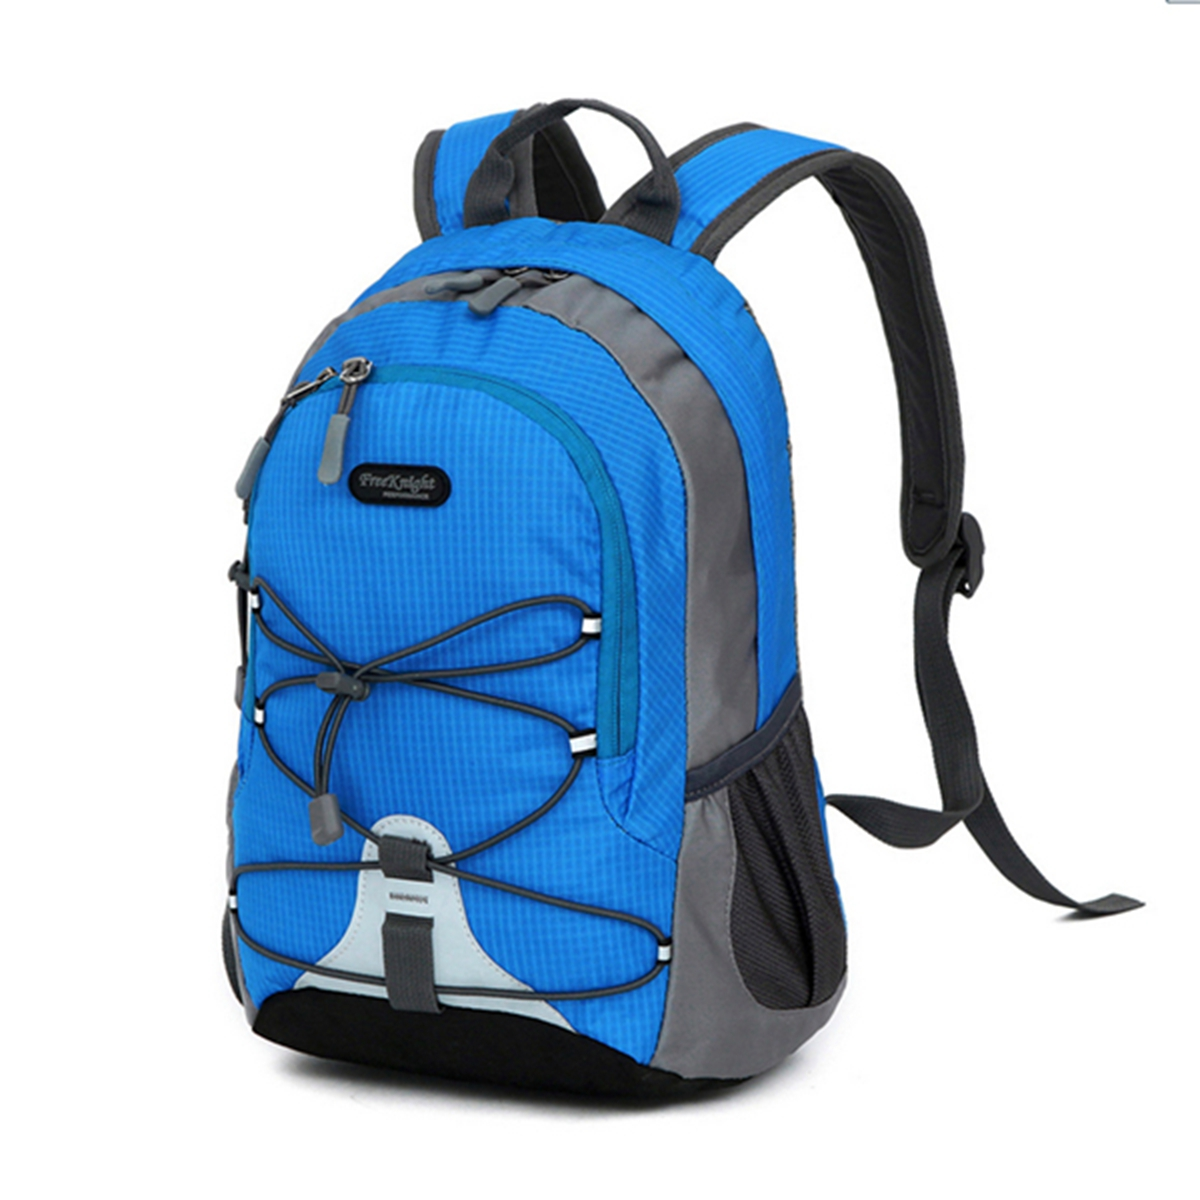 Backpack Or Other Bag For Travel